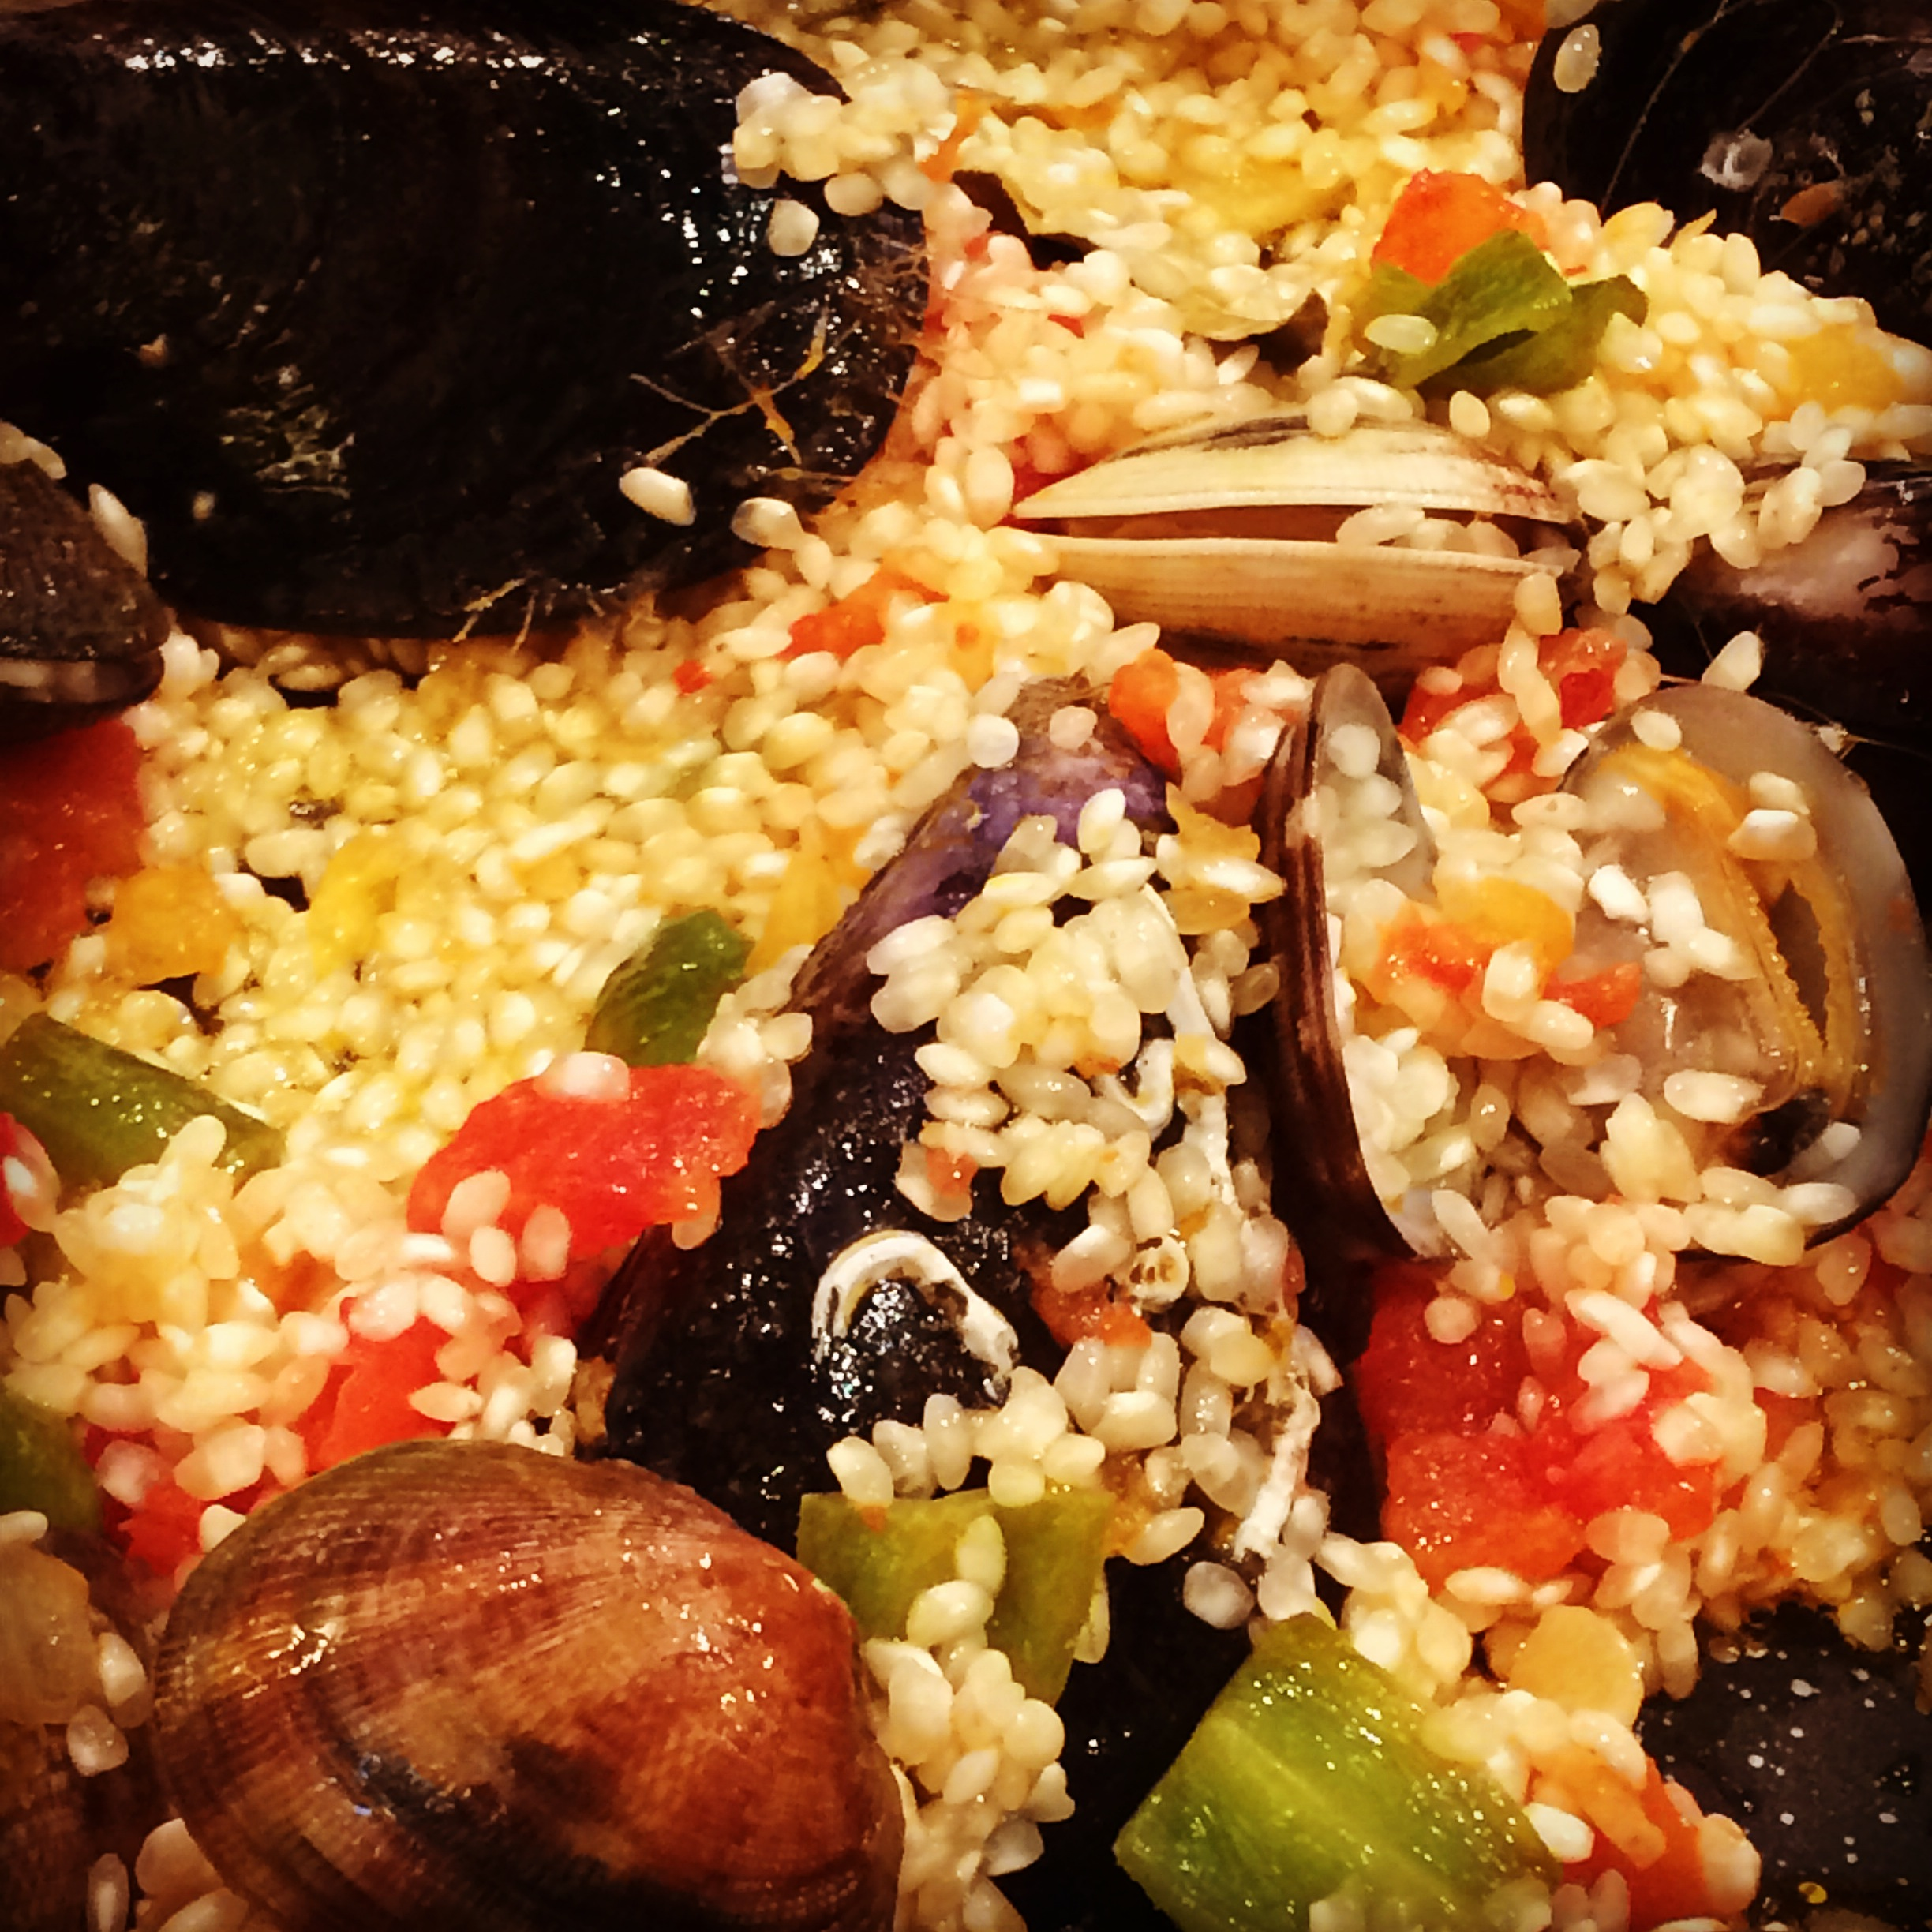 Clams, Muscles, Rice Paella Mixture